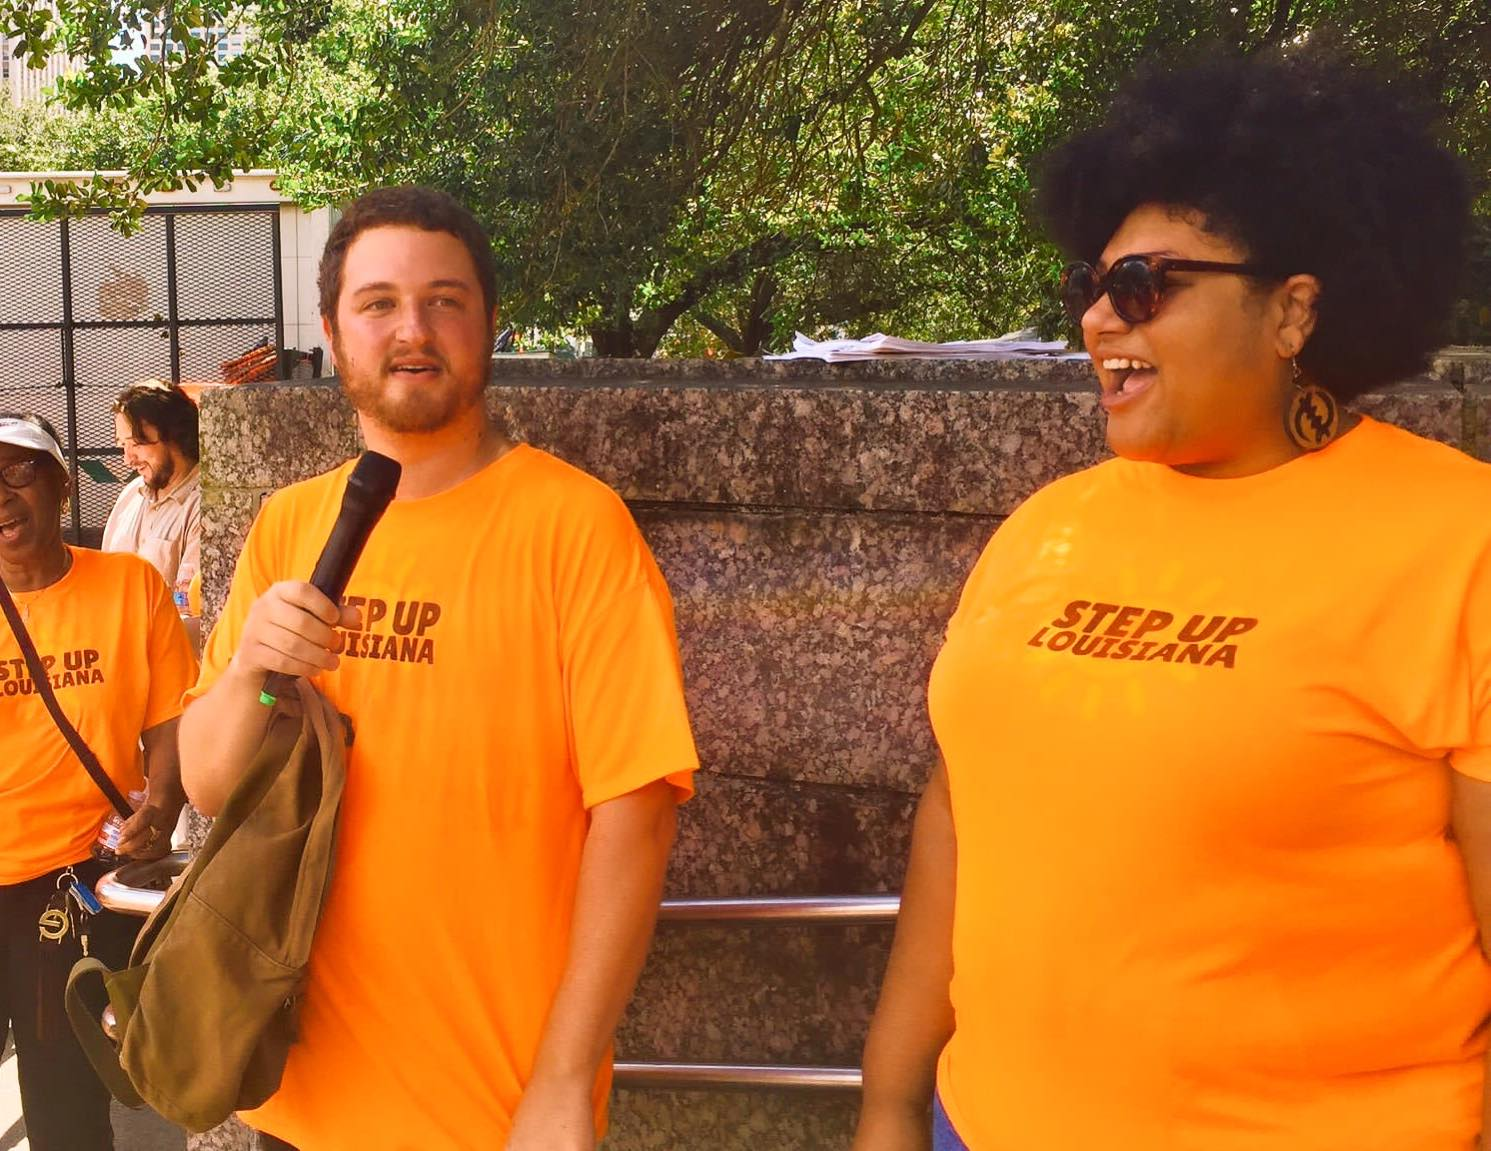 Co-Founders, Co-Directors - Our co-directors Maria Harmon and Ben Zucker co-founded Step Up Louisiana because they saw the need for an independent political organization with a racial justice analysis that could win on education justice and economic justice issues. Together they are working to build Step Up into a powerful force across the state.To reach them you can contact Maria at maria@stepuplouisiana.org and Ben at ben@stepuplouisiana.org